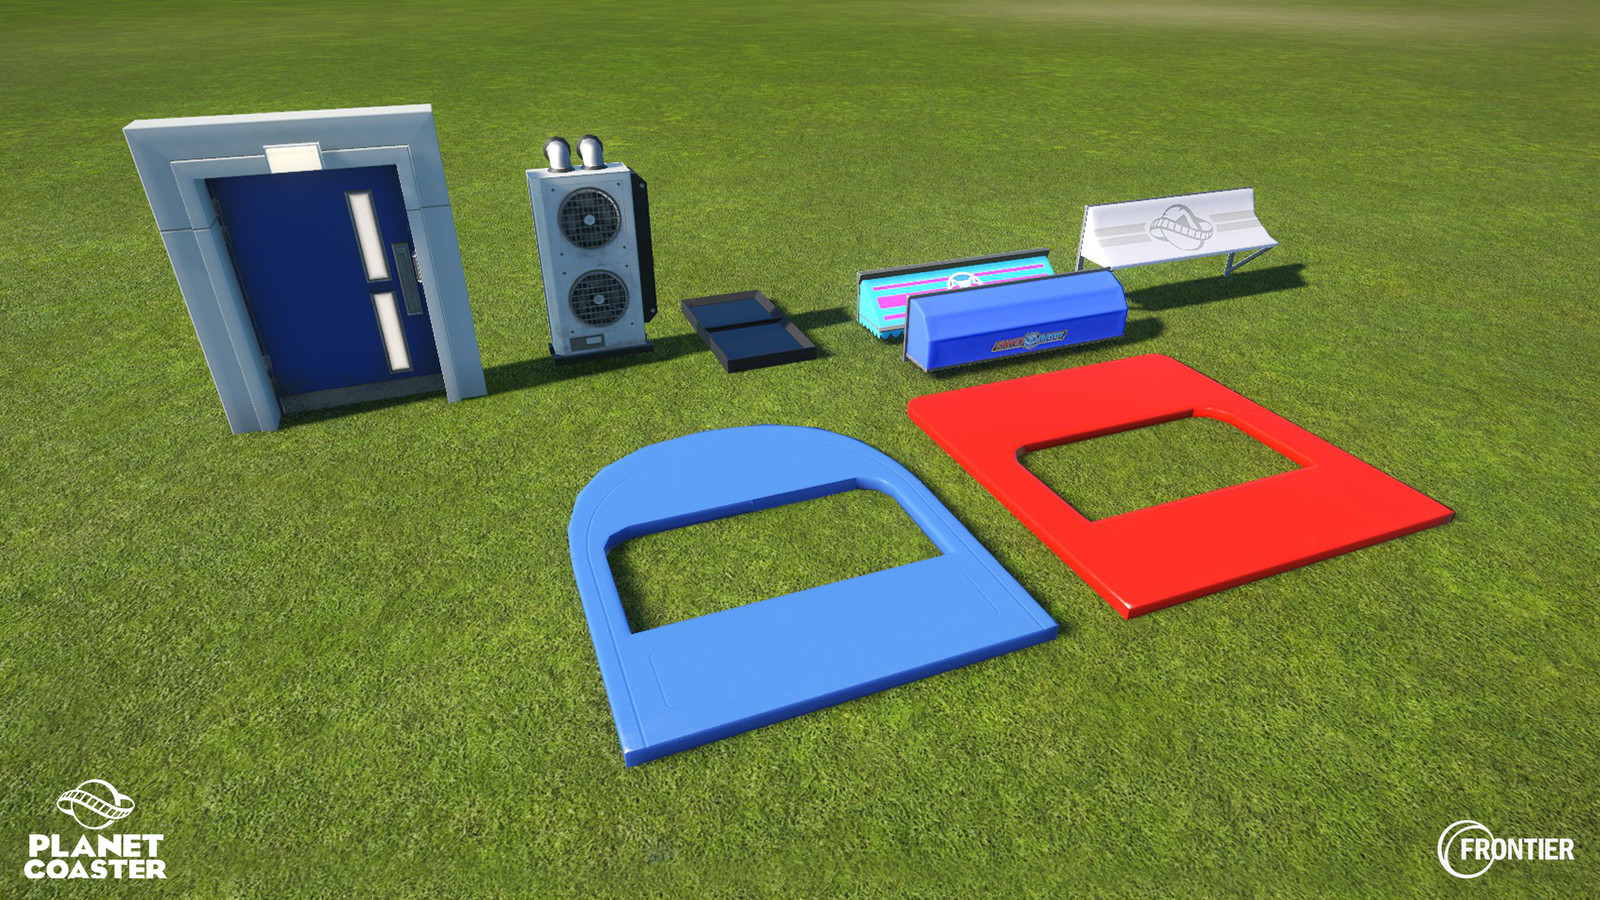 Assets done for the base Planetcoaster theme